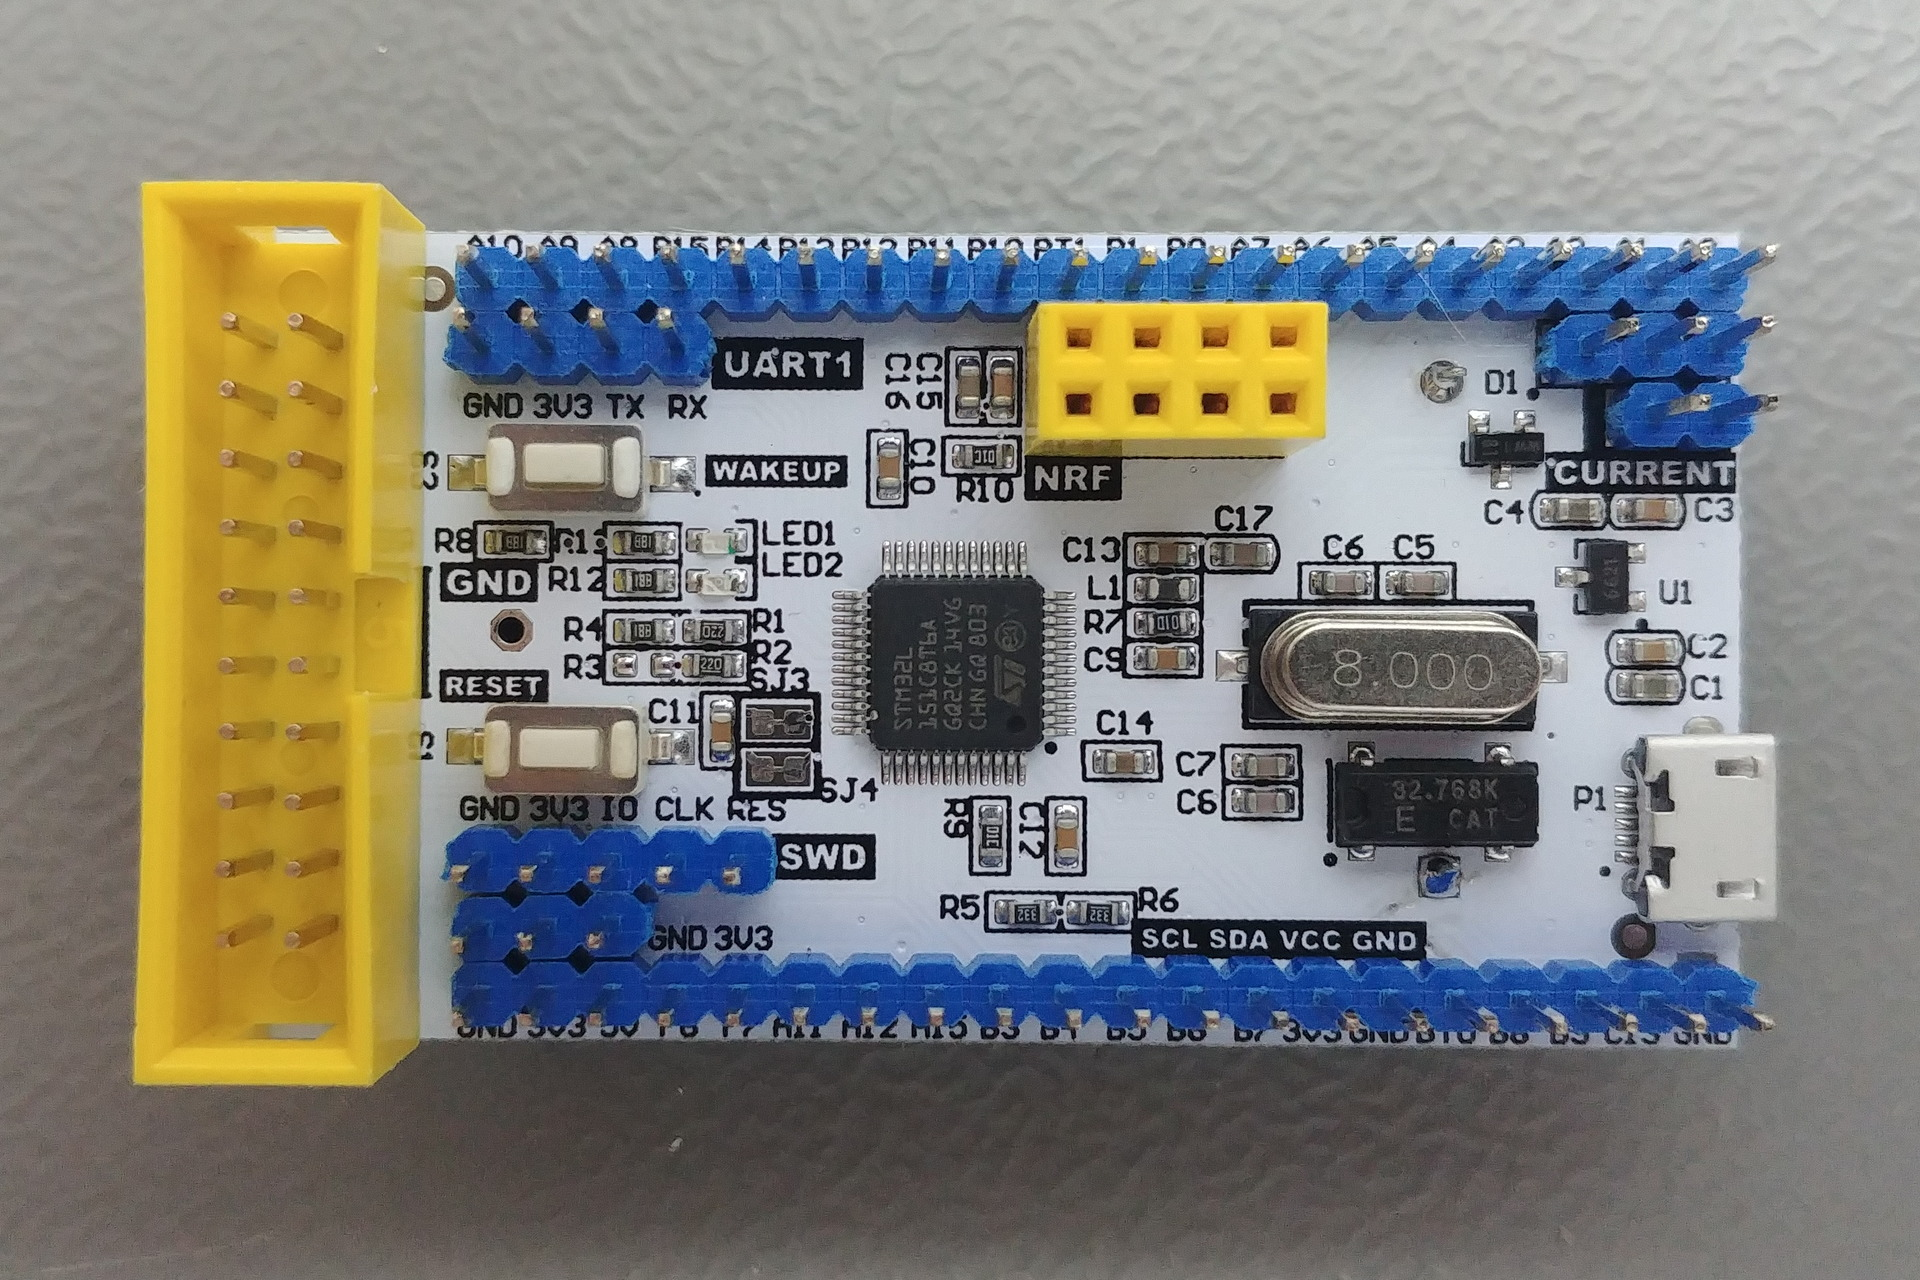 STM32xxxC8T6 Board: Top view